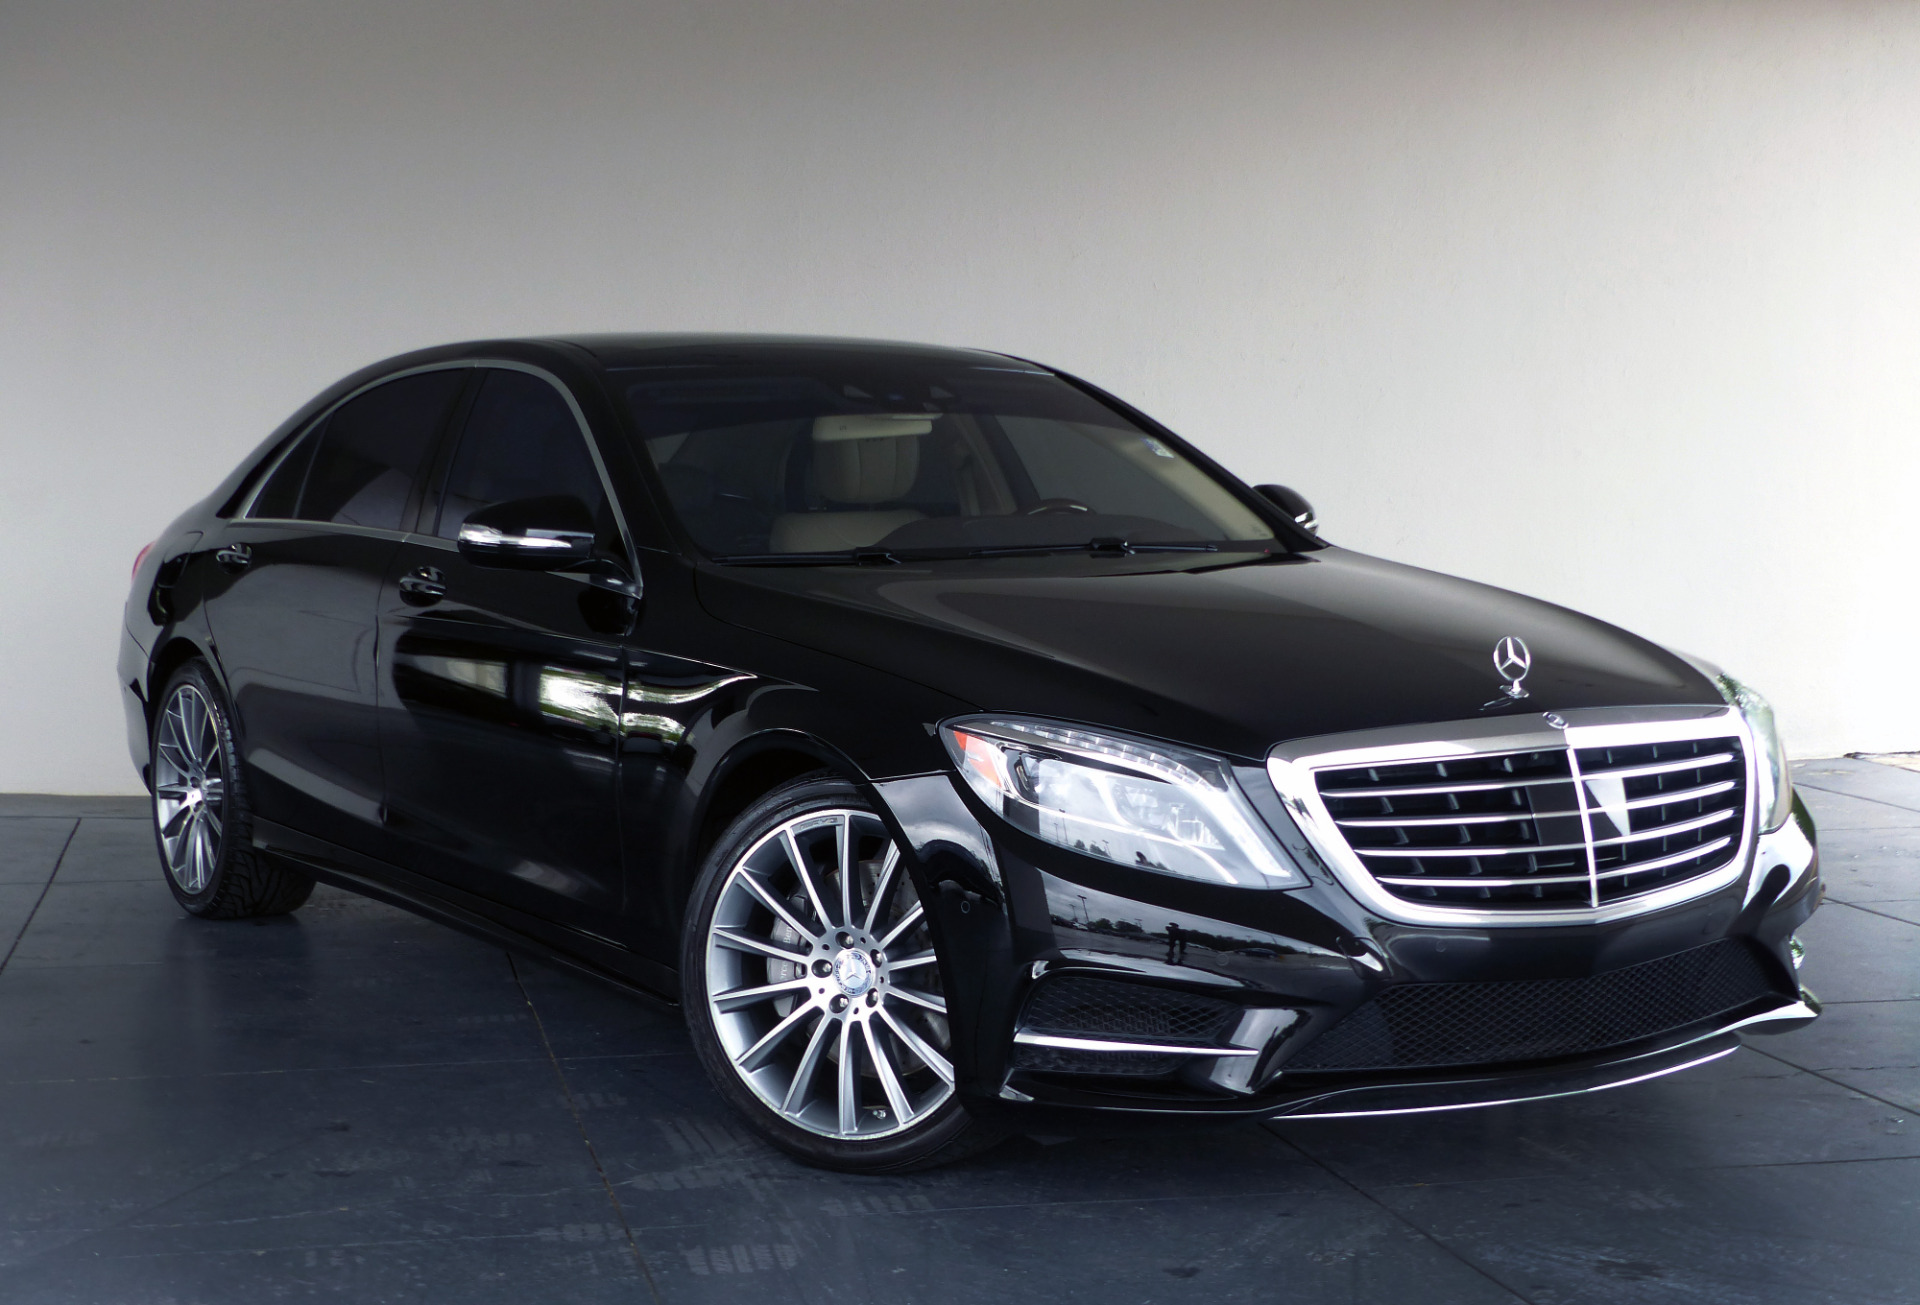 Used 2015 mercedes benz s class s550 marietta ga for Used s class mercedes benz